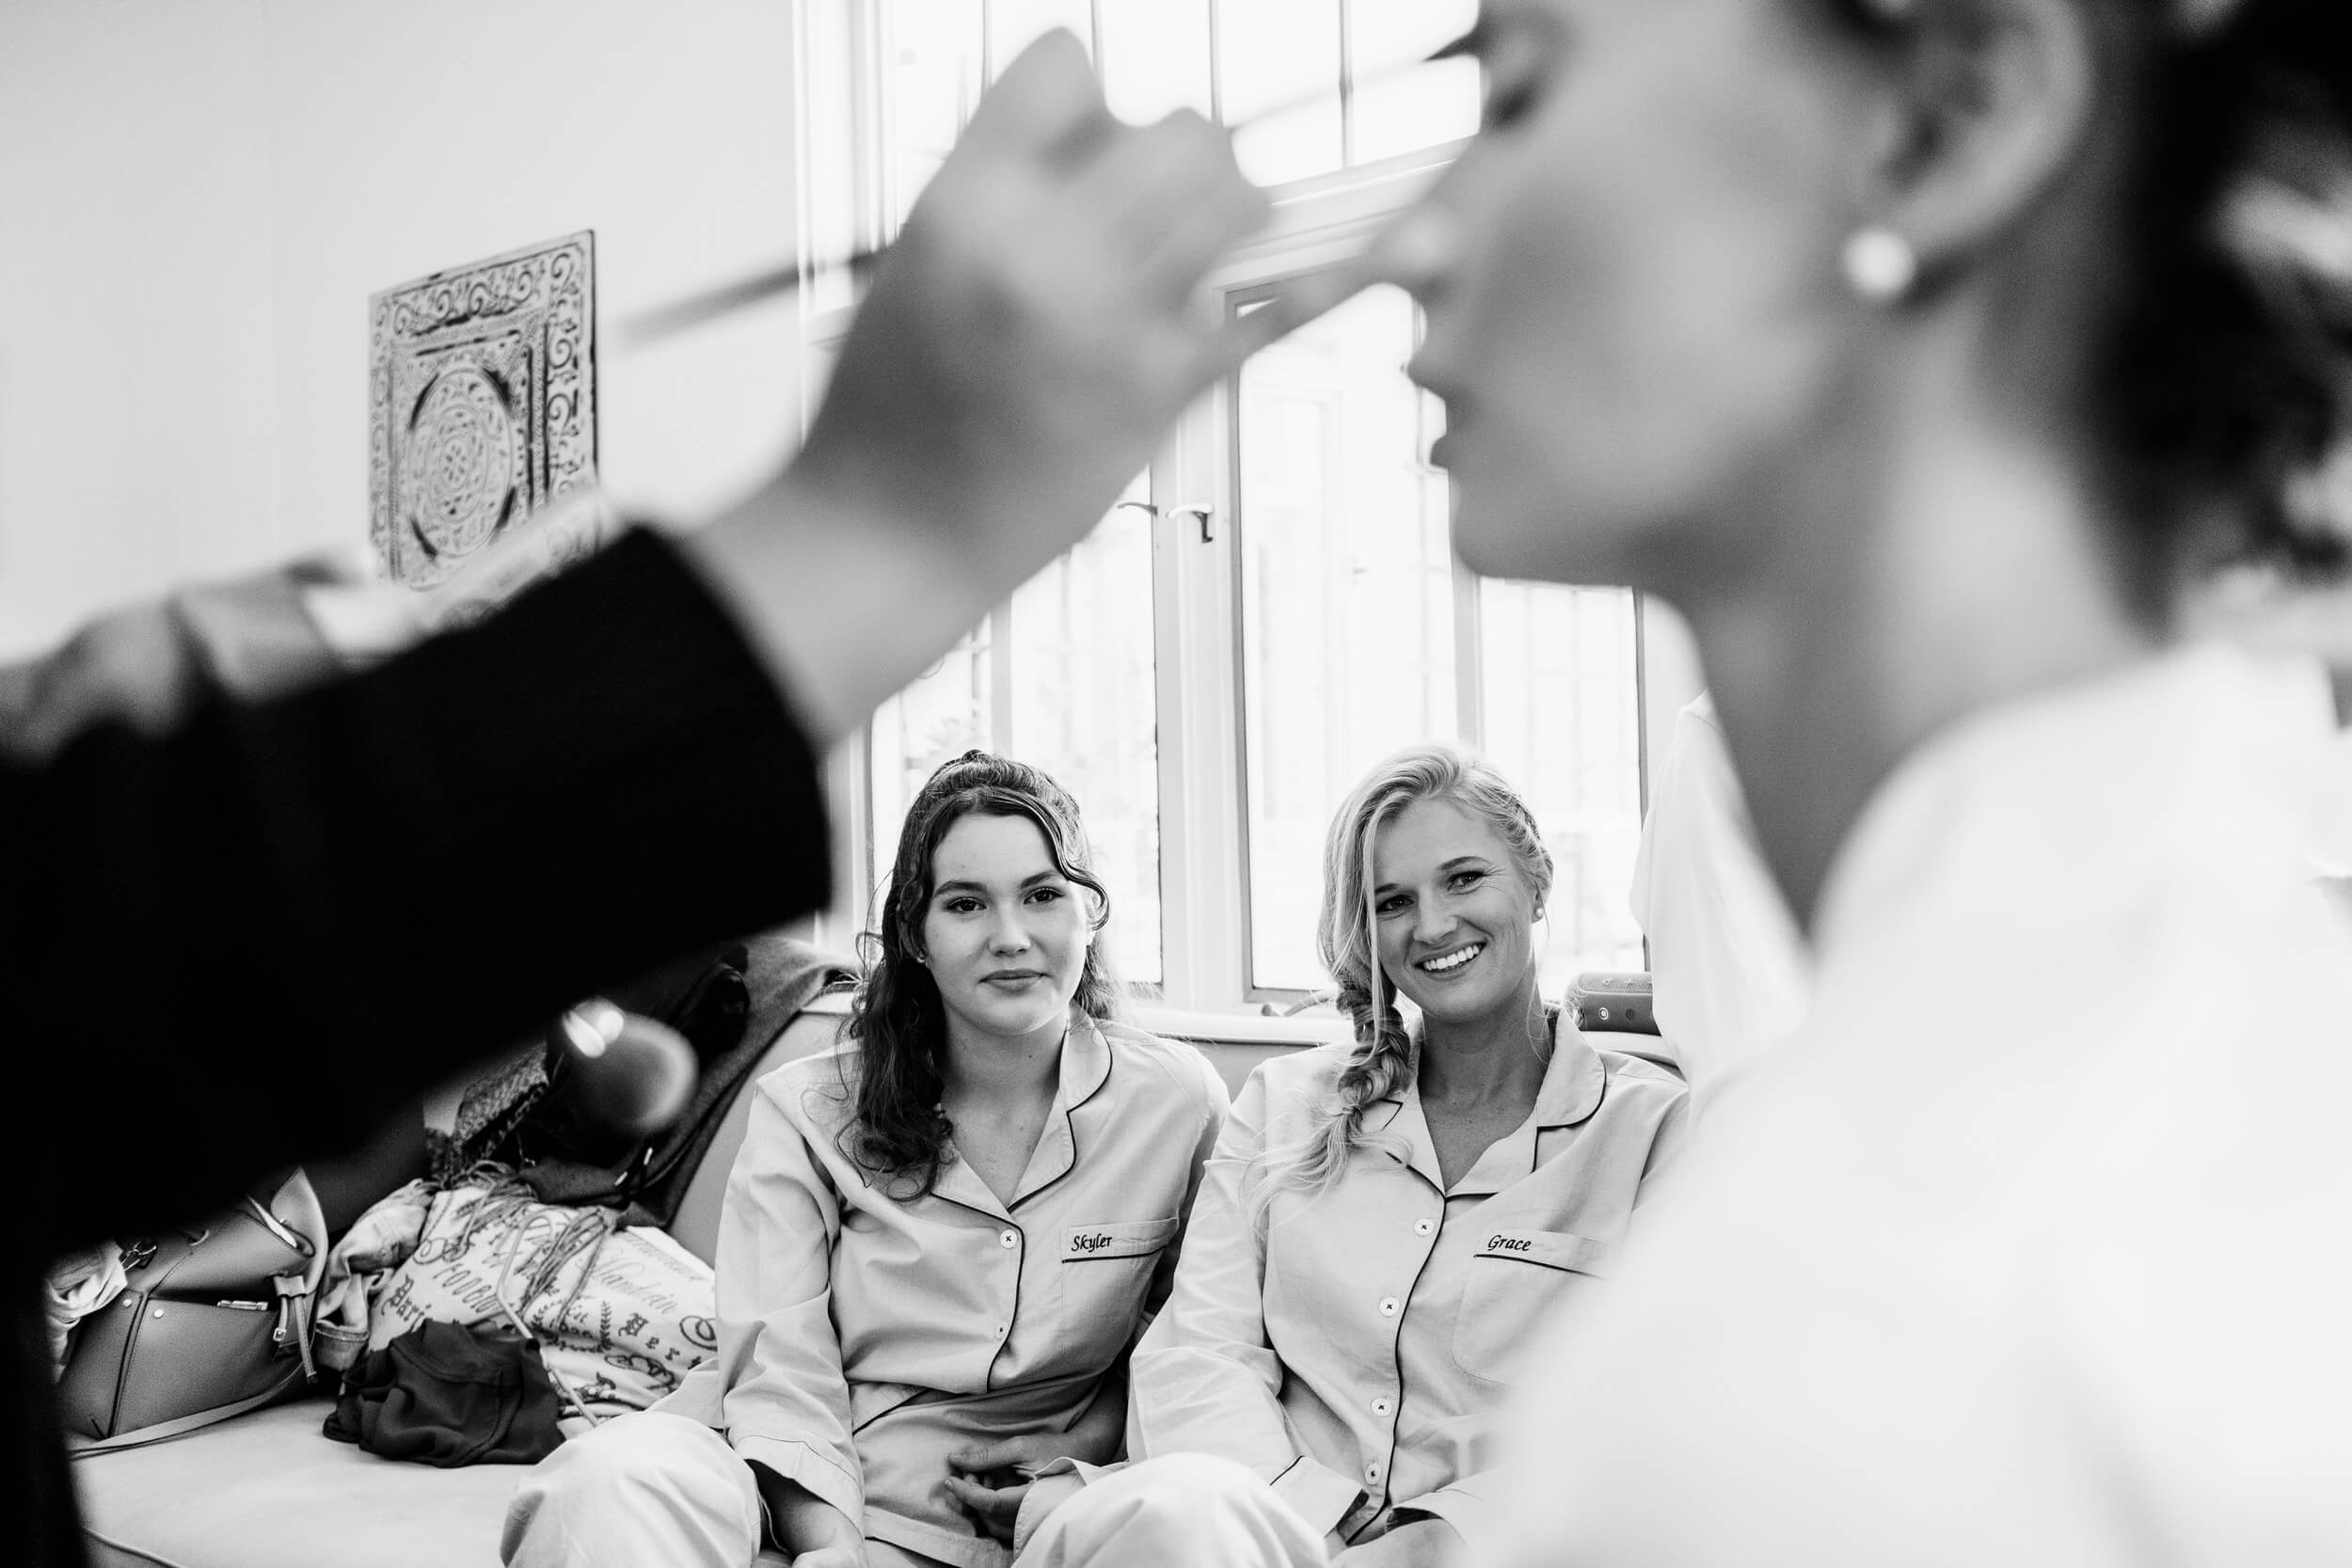 bridesmaids watch bride get makeup applied in matching pajamas